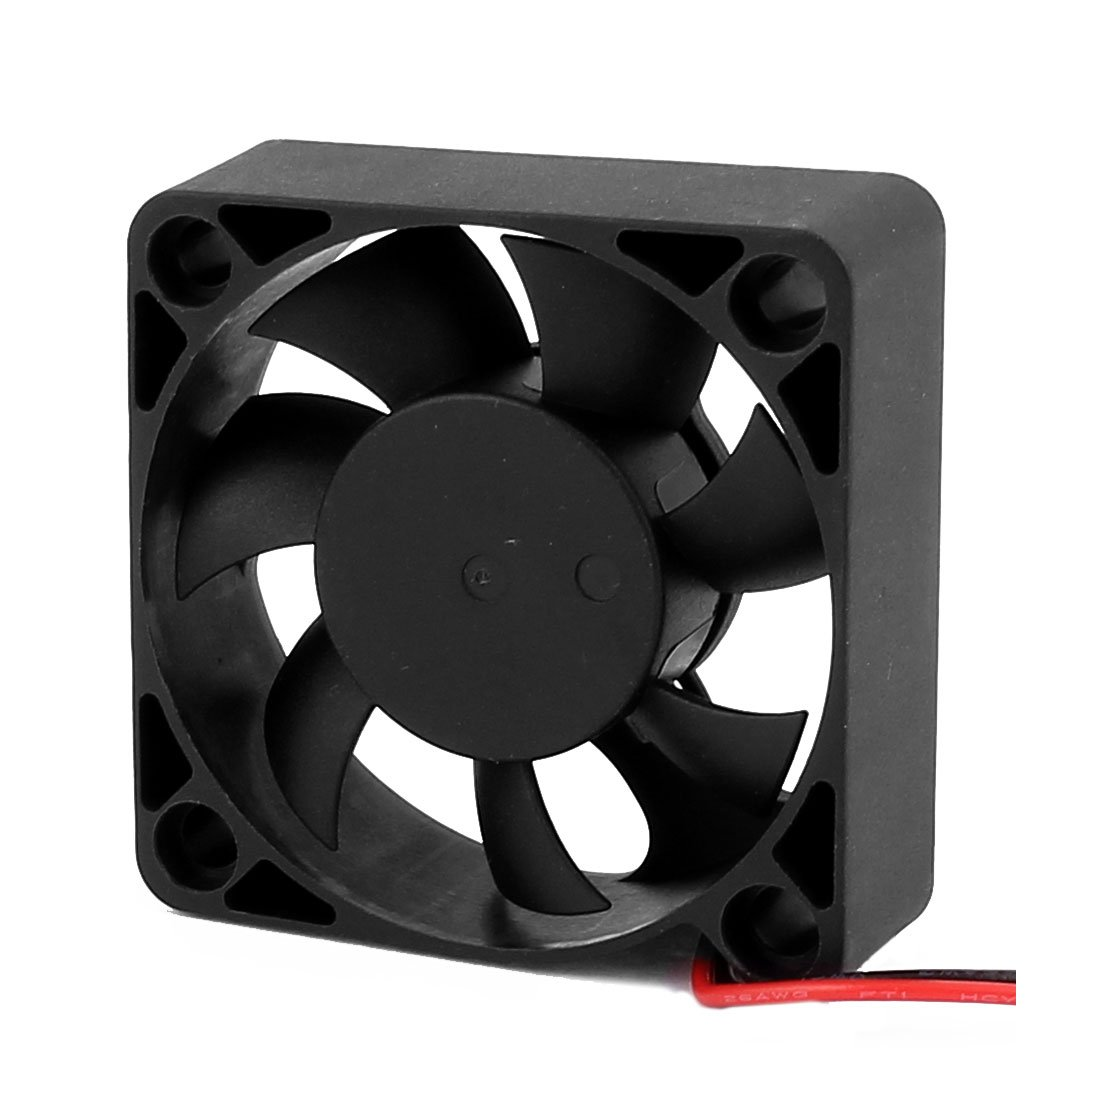 Aexit DC 24V Electrical equipment 50mmx50mmx10mm Brushless 7 Vanes Cooling Cooler Case Fan